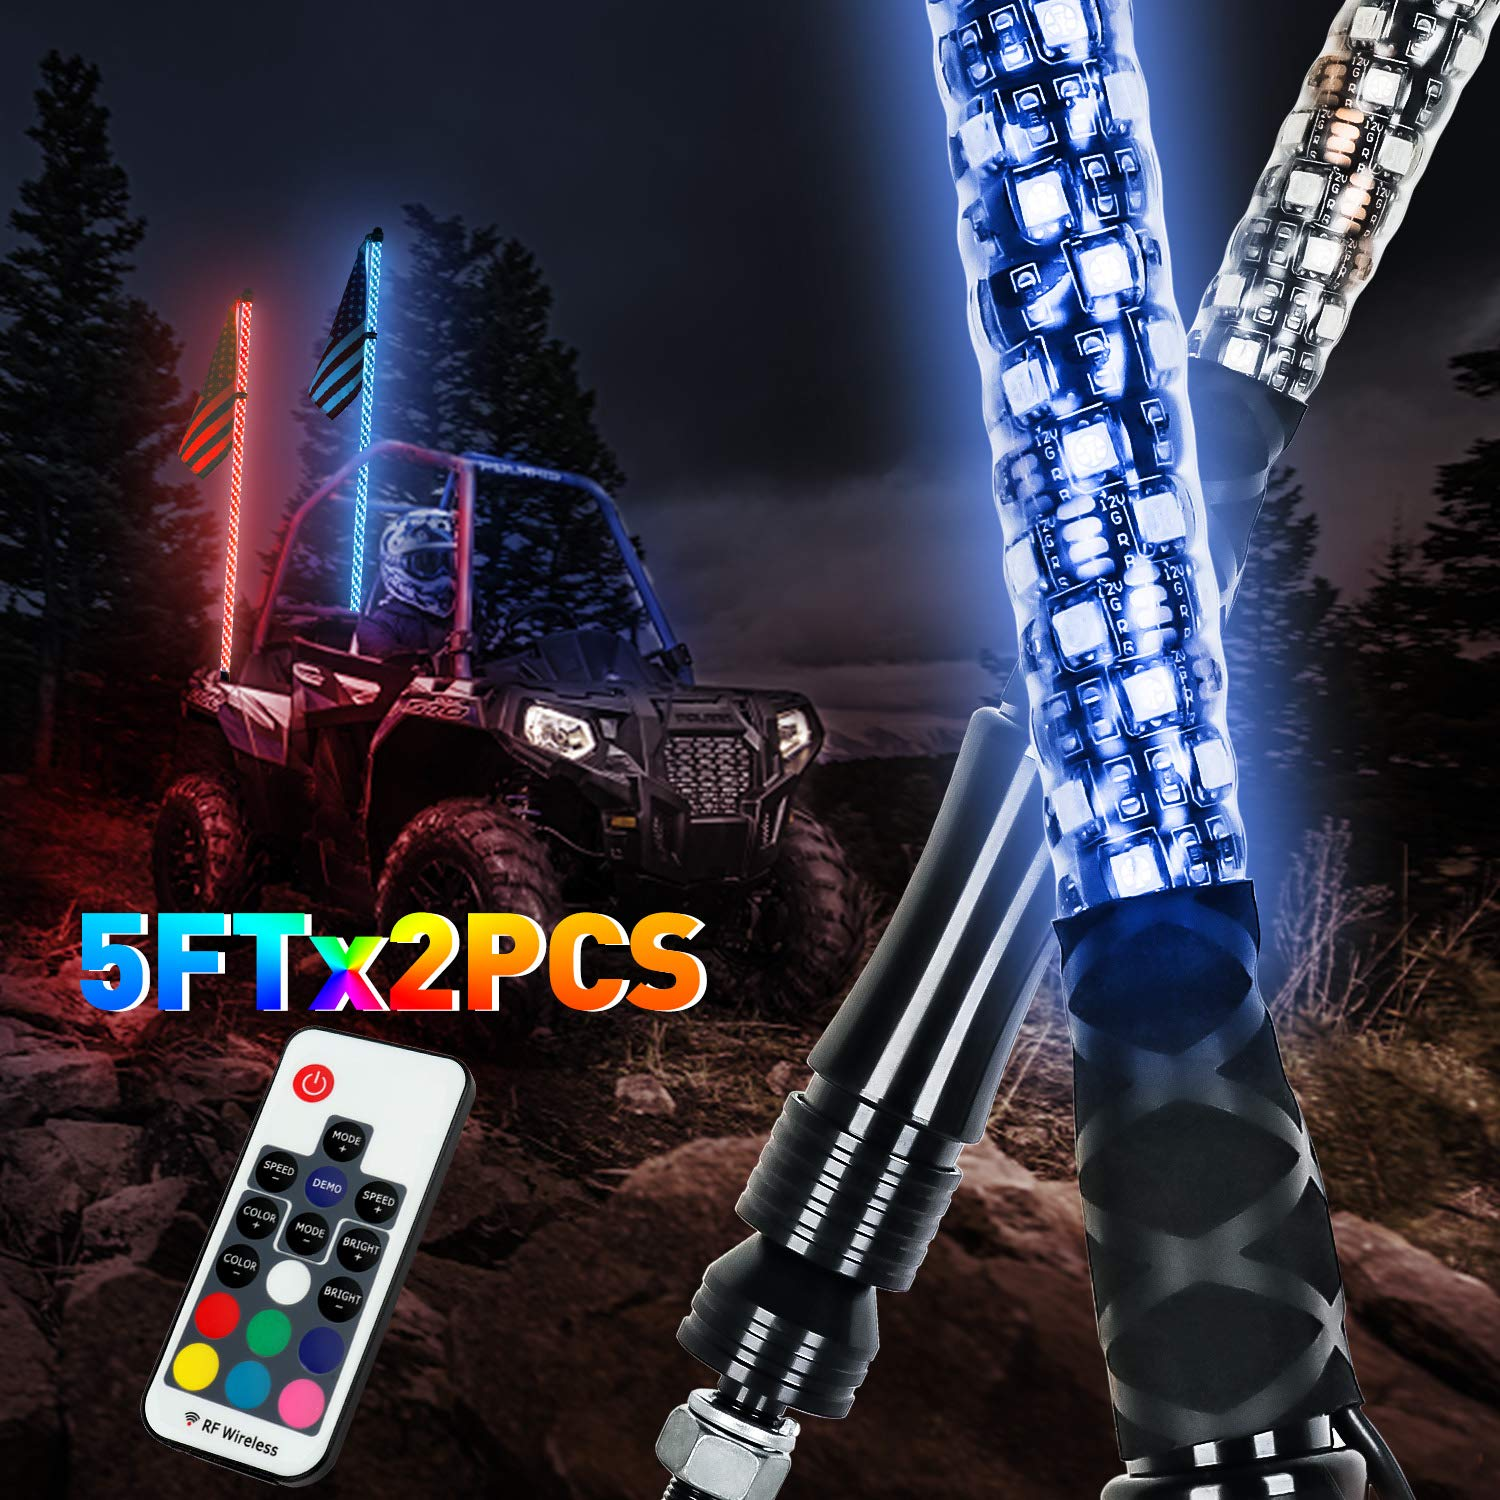 LED Whip Lights, AAIWA 2PCS 5FT Wireless Remote LED Antenna Light for UTV Polaris RZR 4 Wheeler Off Road ATV Jeep Truck Dunes by AAIWA